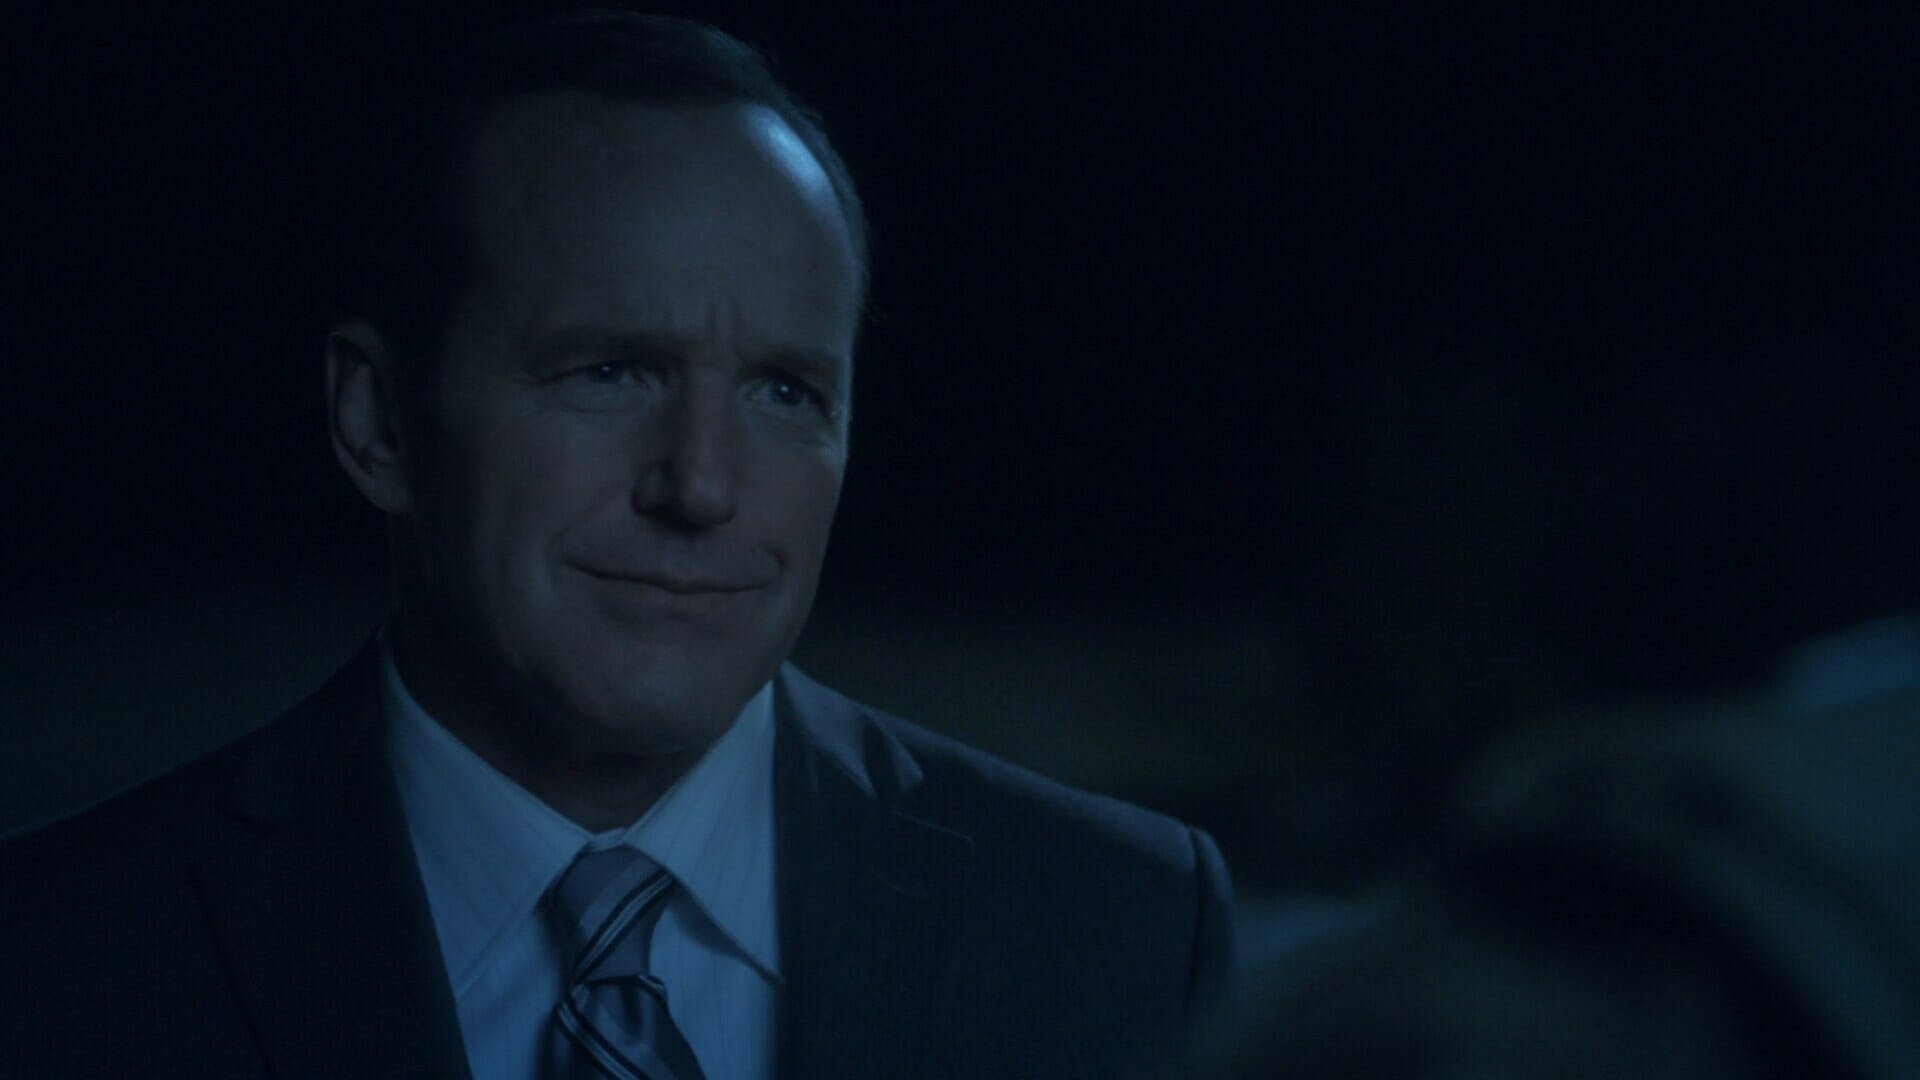 captain marvel will be an origin story for agent coulson